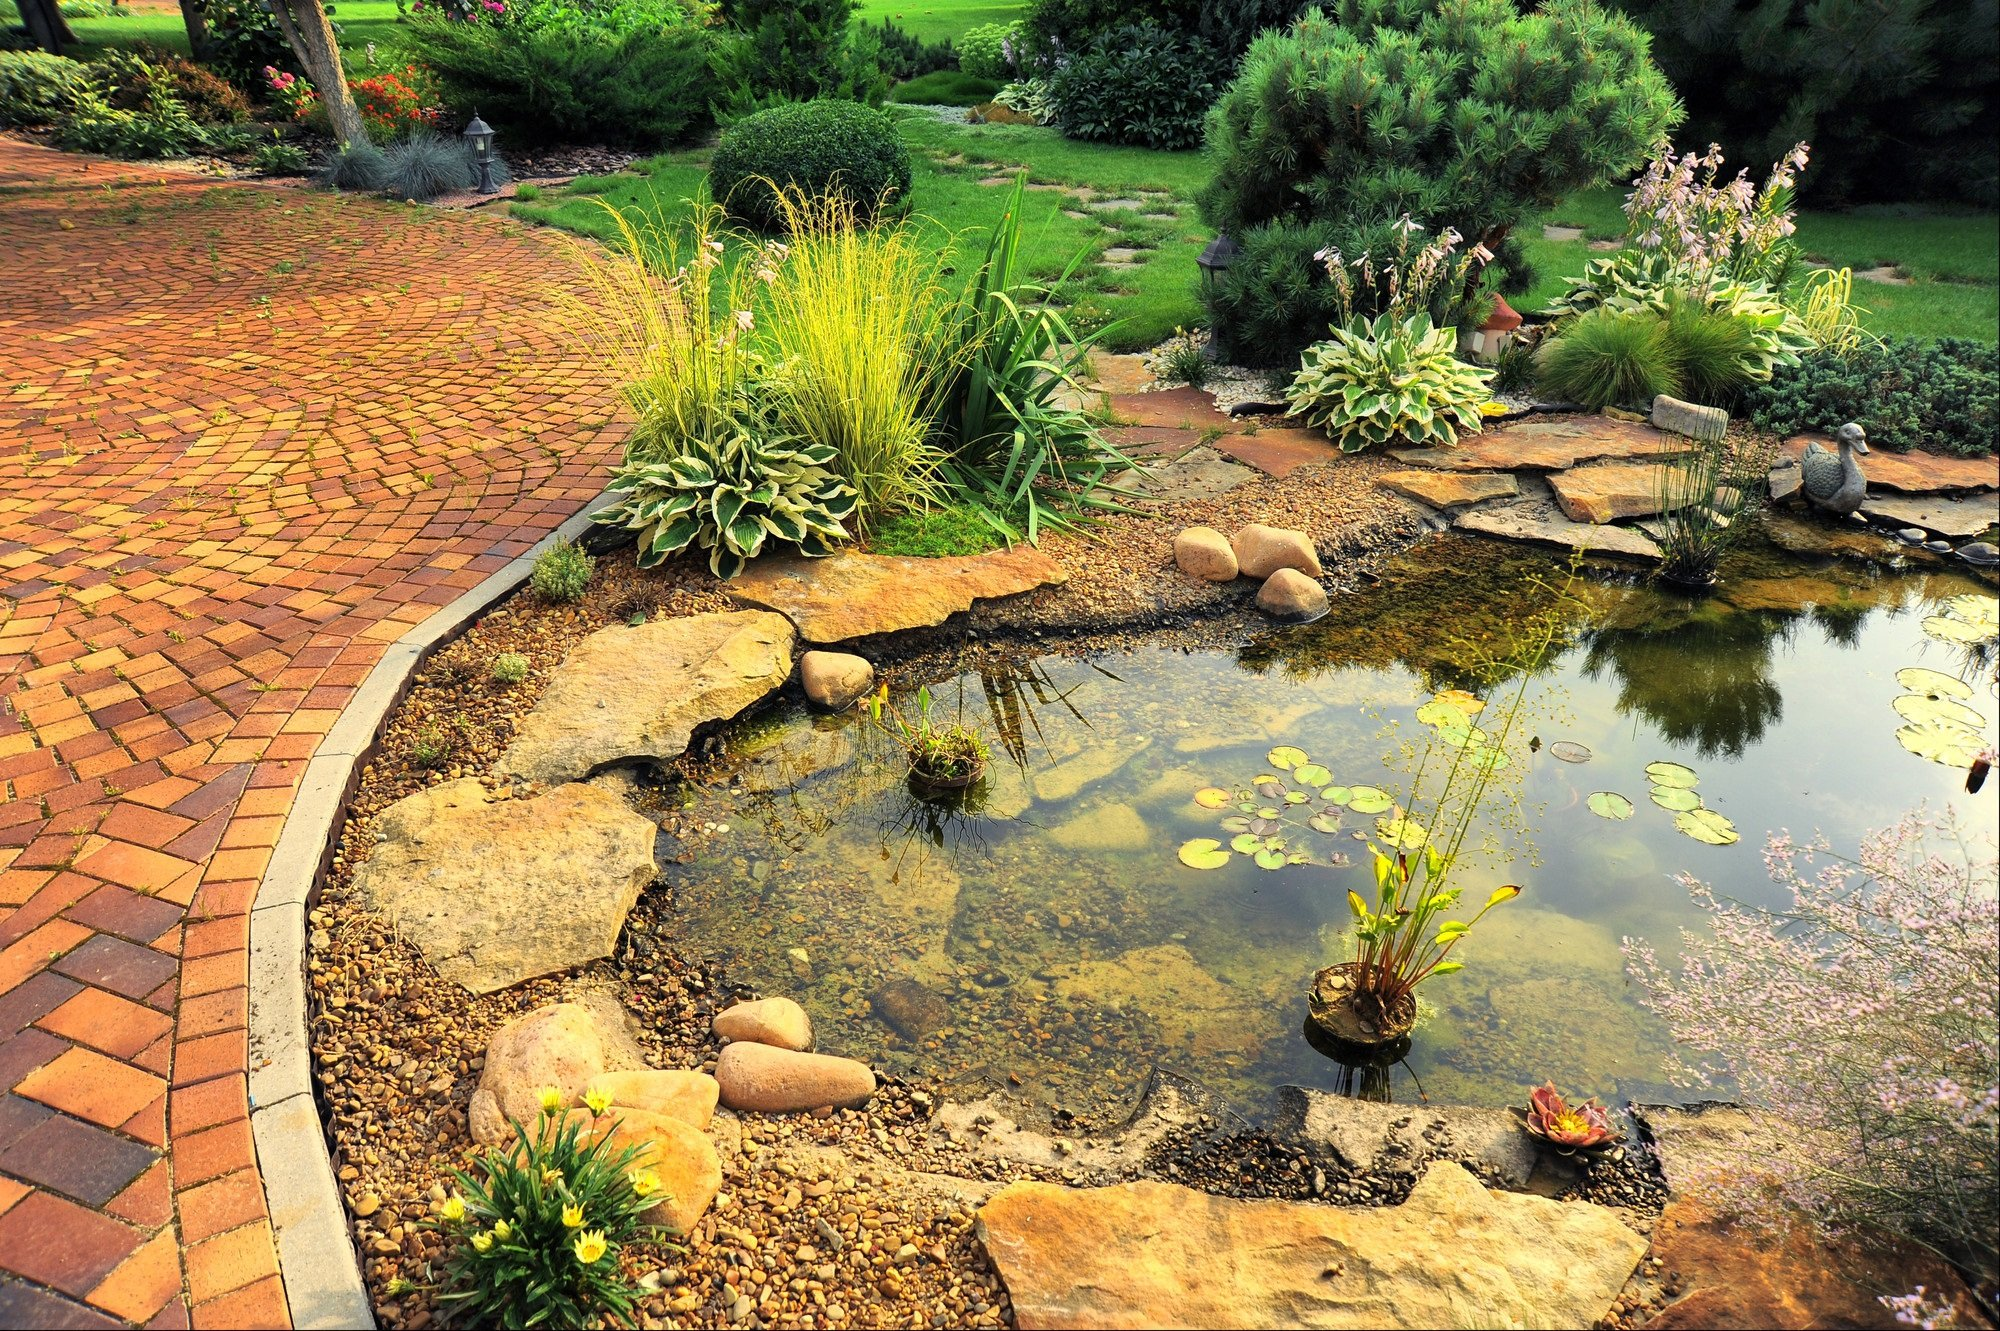 rockery style pond edging with aquatic plants